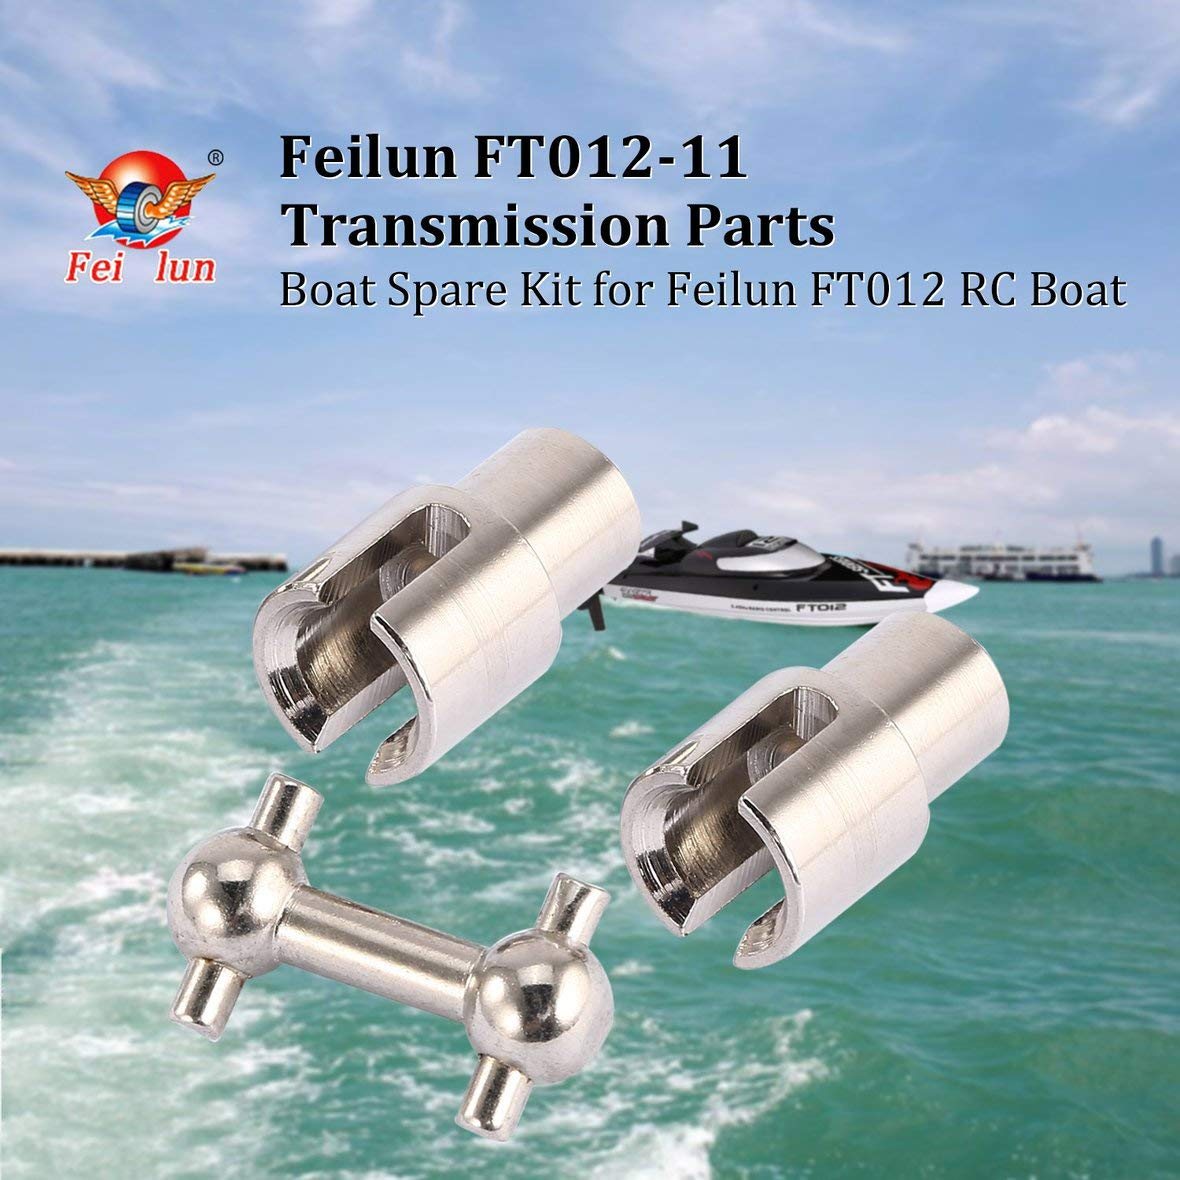 Tivolii for Feilun FT012-12 Metal Transmission Parts Boat Spare Part Components Kit RC Parts for for Feilun FT011 2.4G Brushless RC Boat Toys